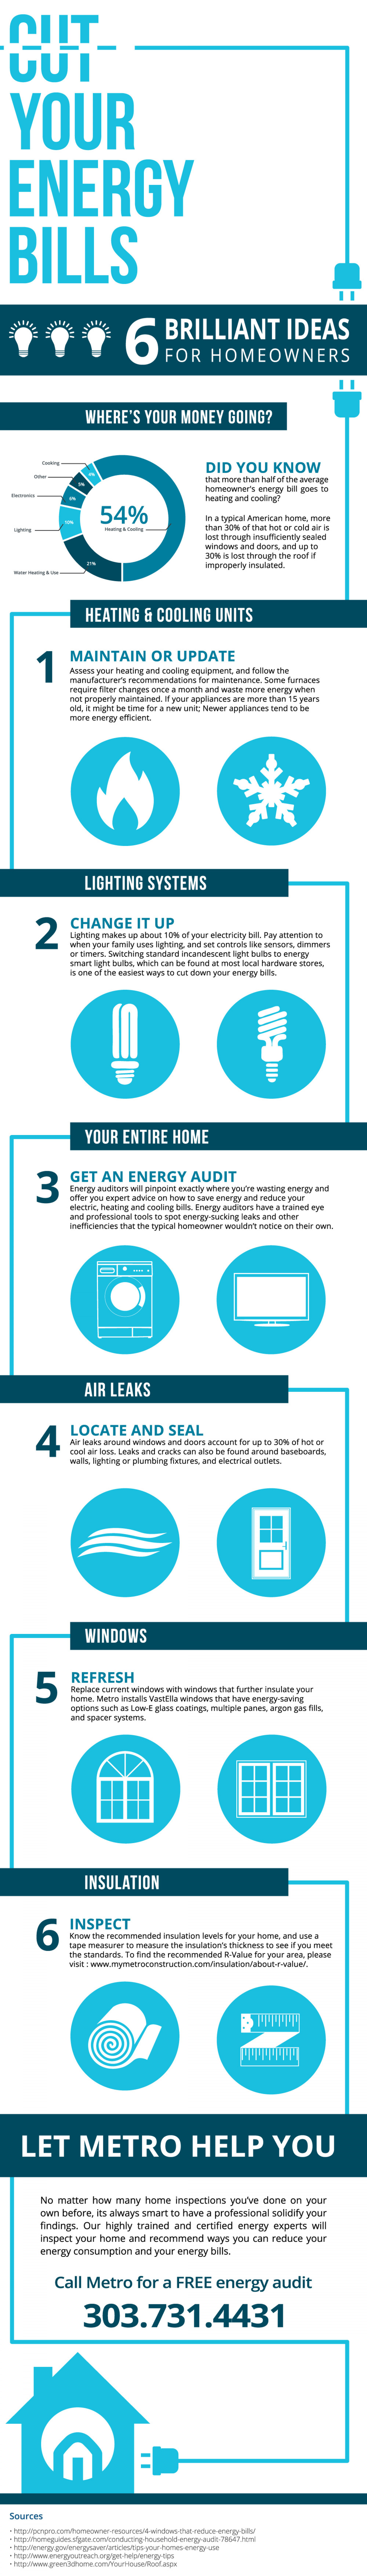 6 Brilliant Ways to Cut Energy Bills Infographic